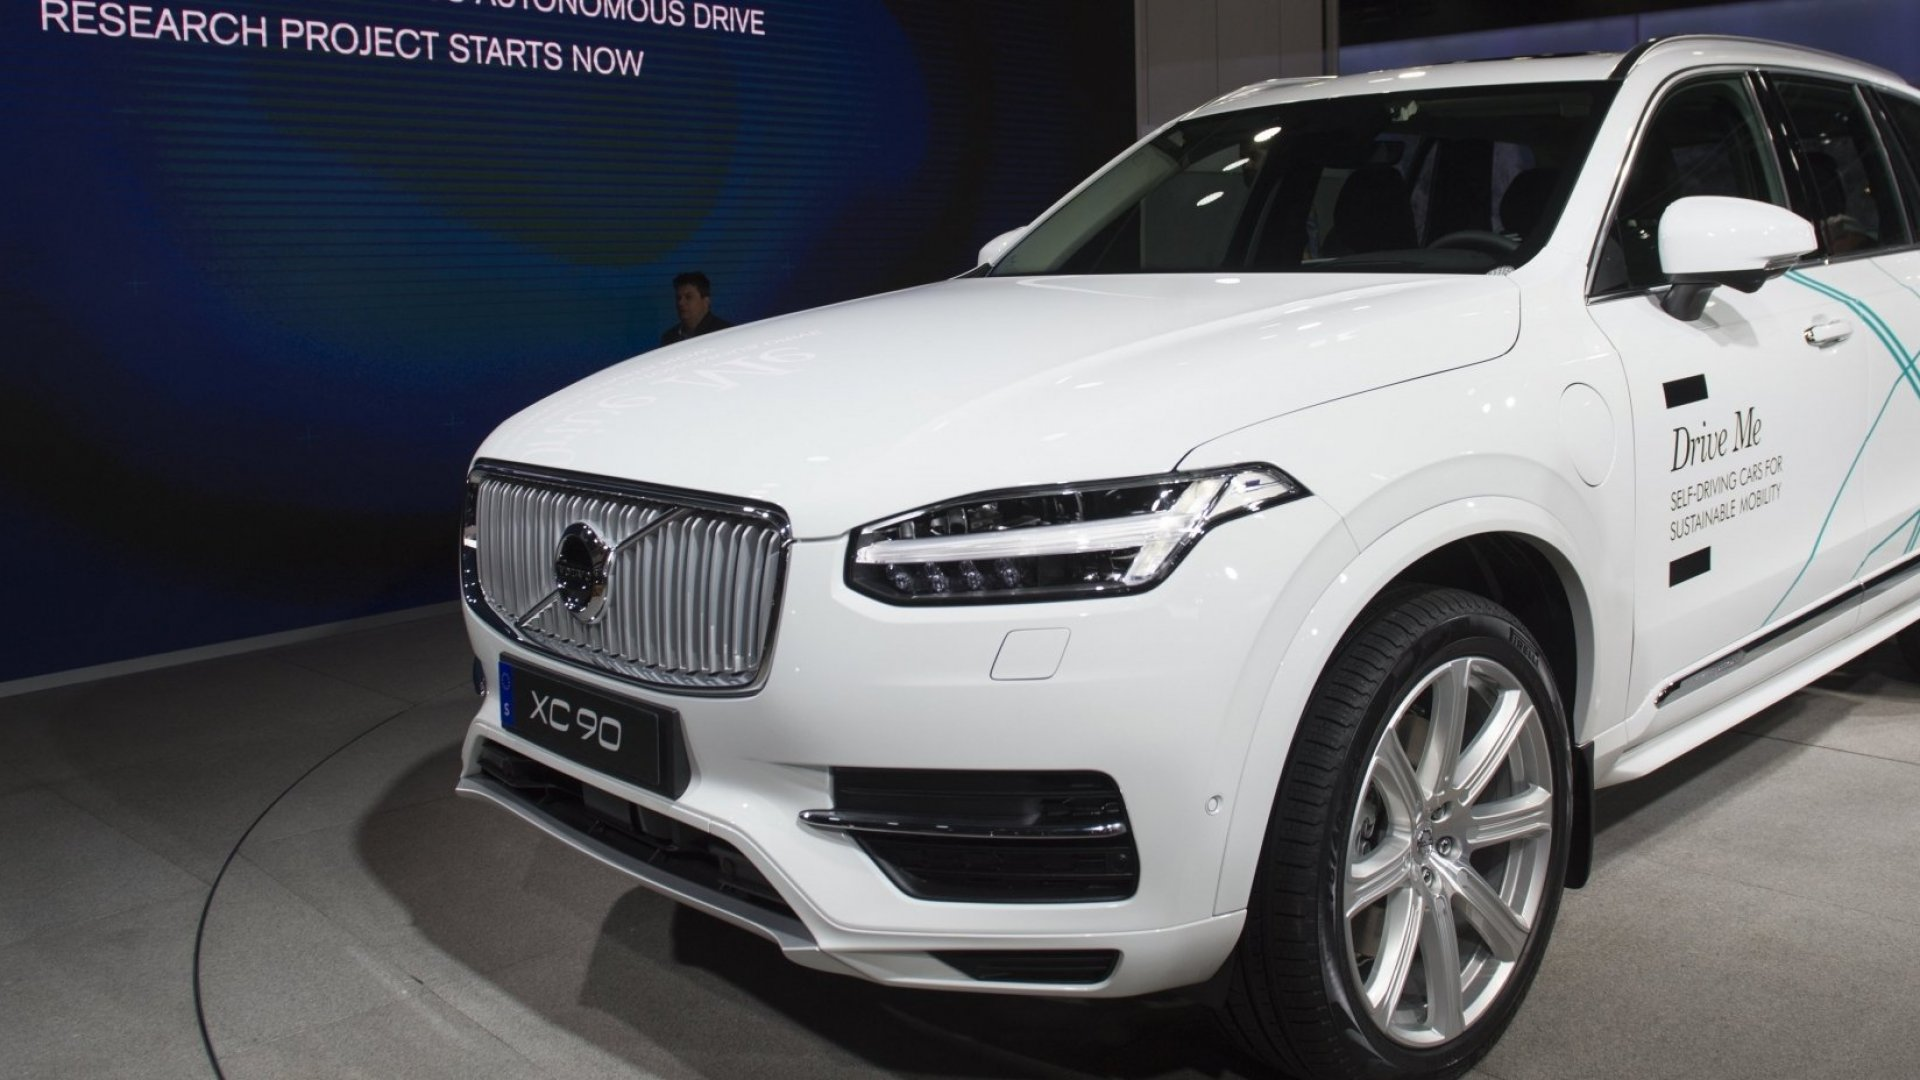 Uber Is Buying Thousands of Self-Driving Cars From Volvo